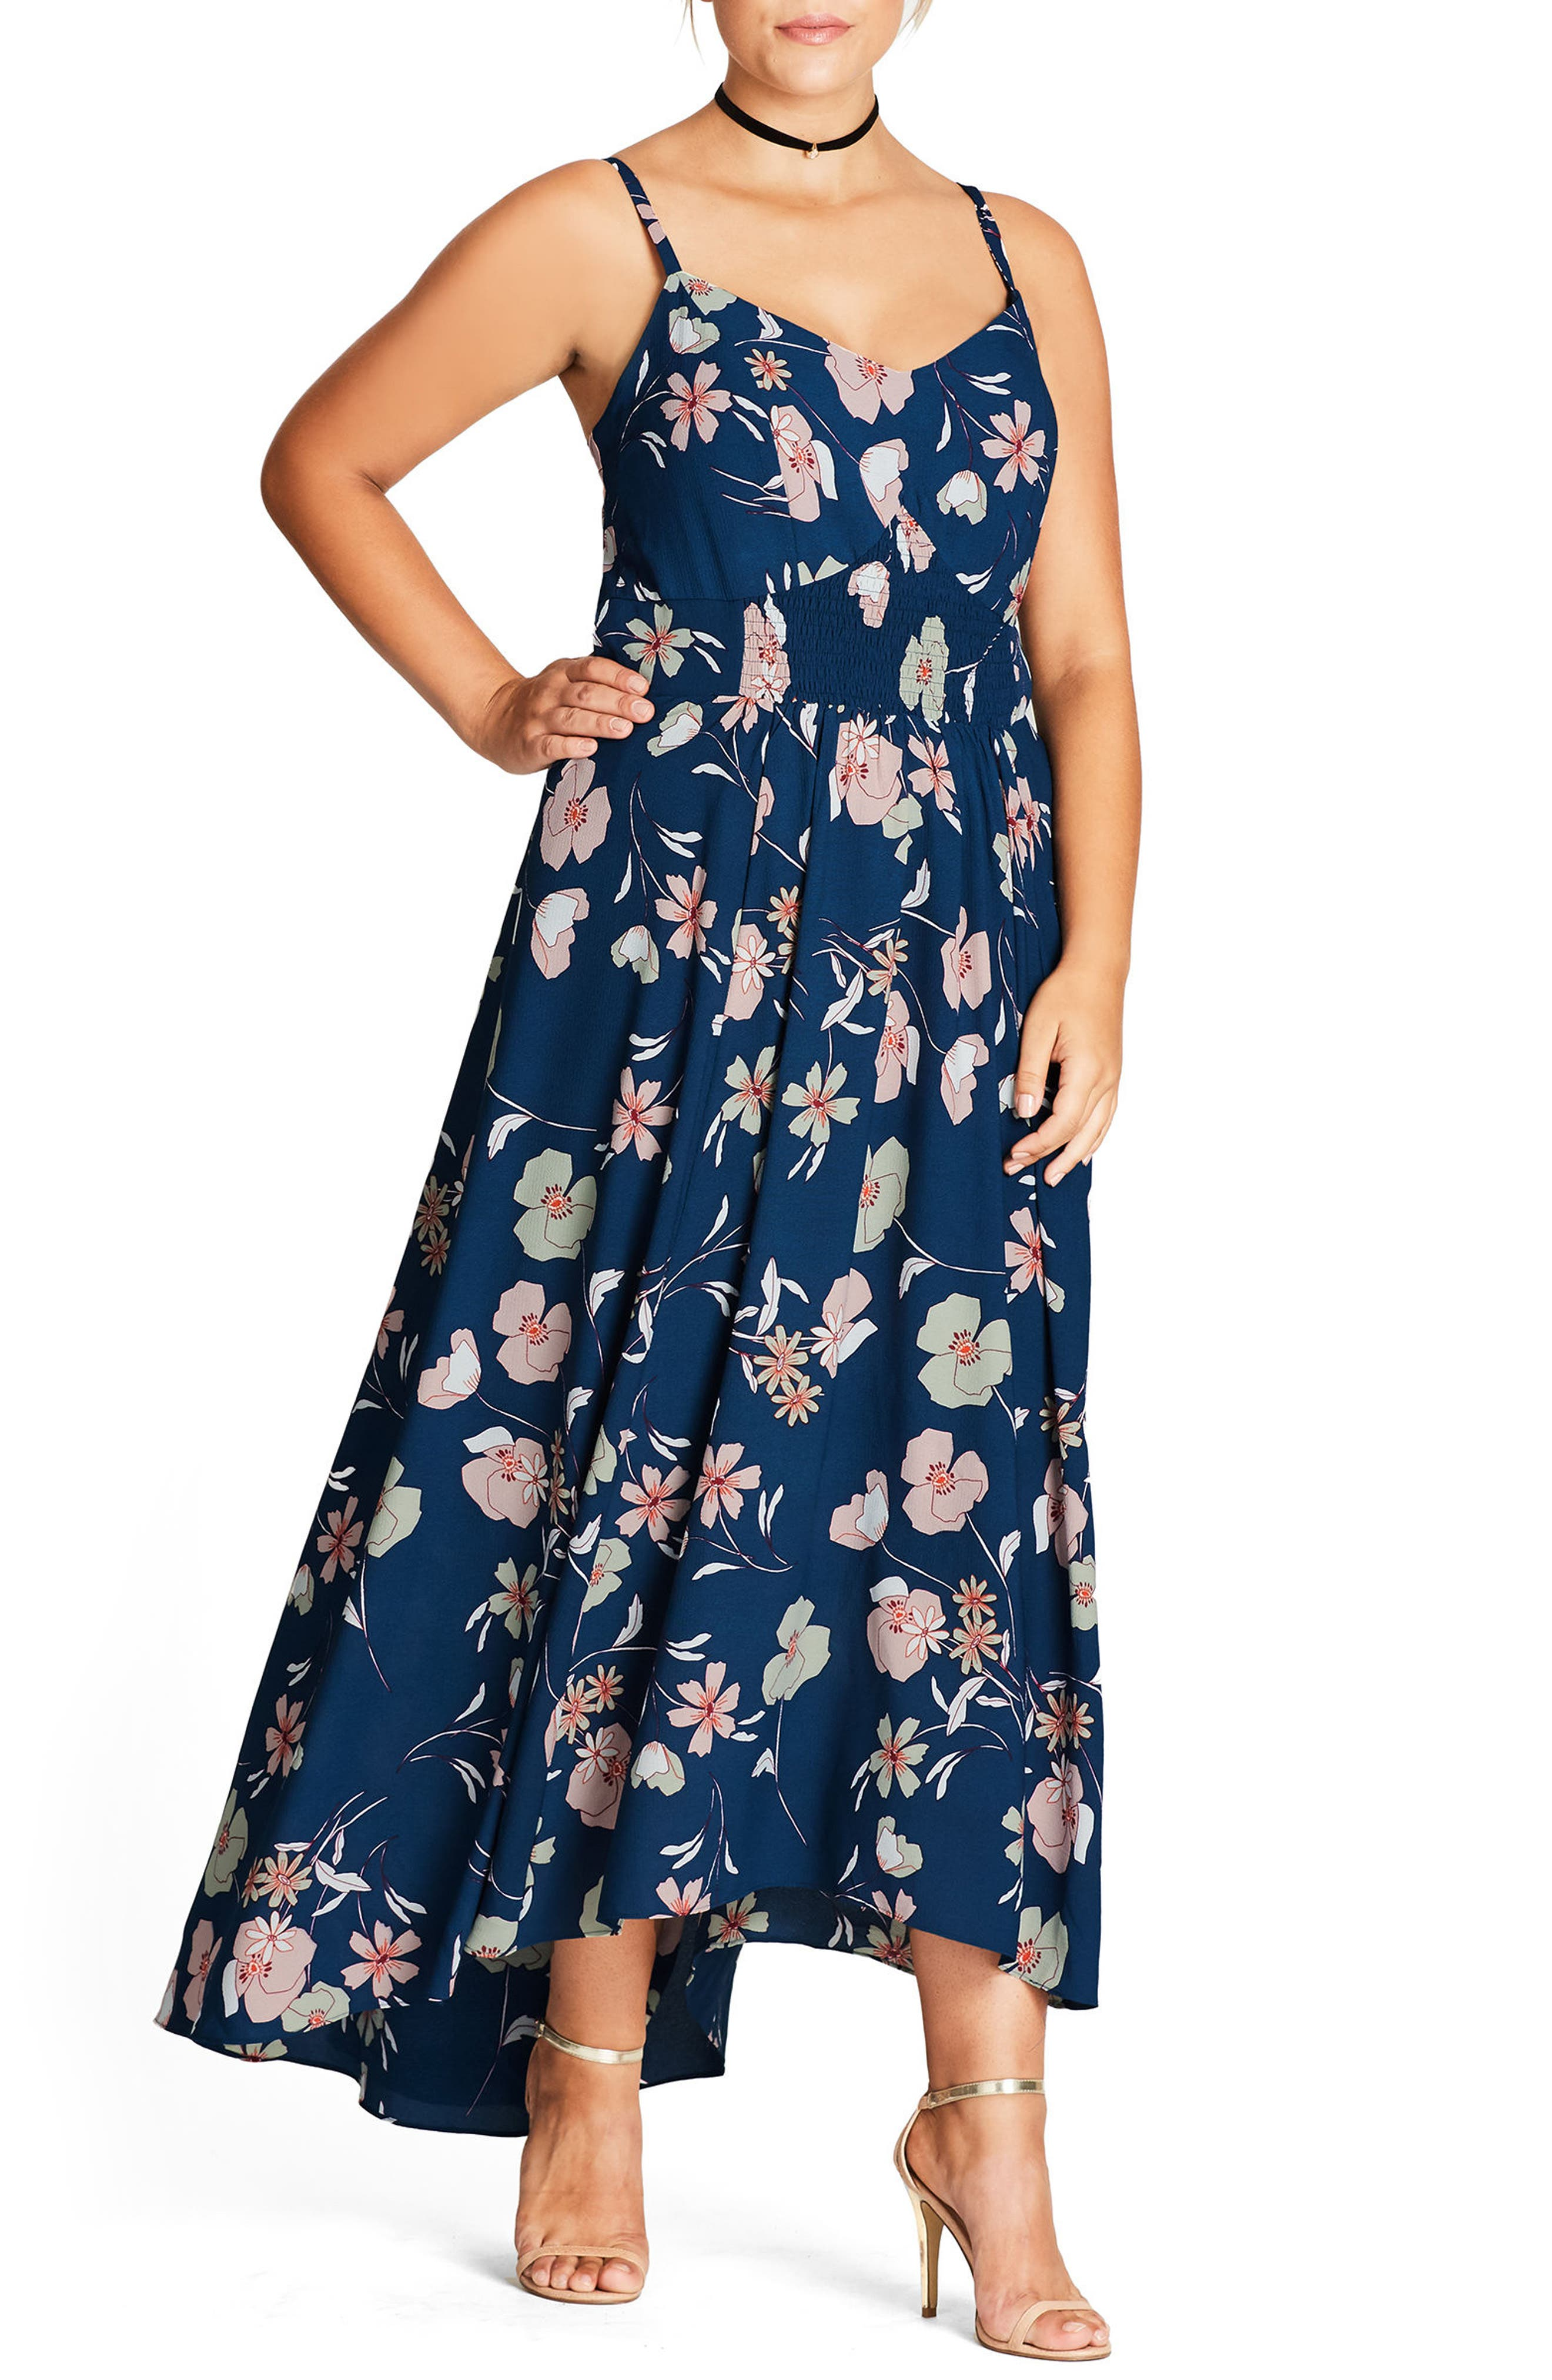 Alternate Image 1 Selected - City Chic Naive Floral Maxi Dress (Plus Size)